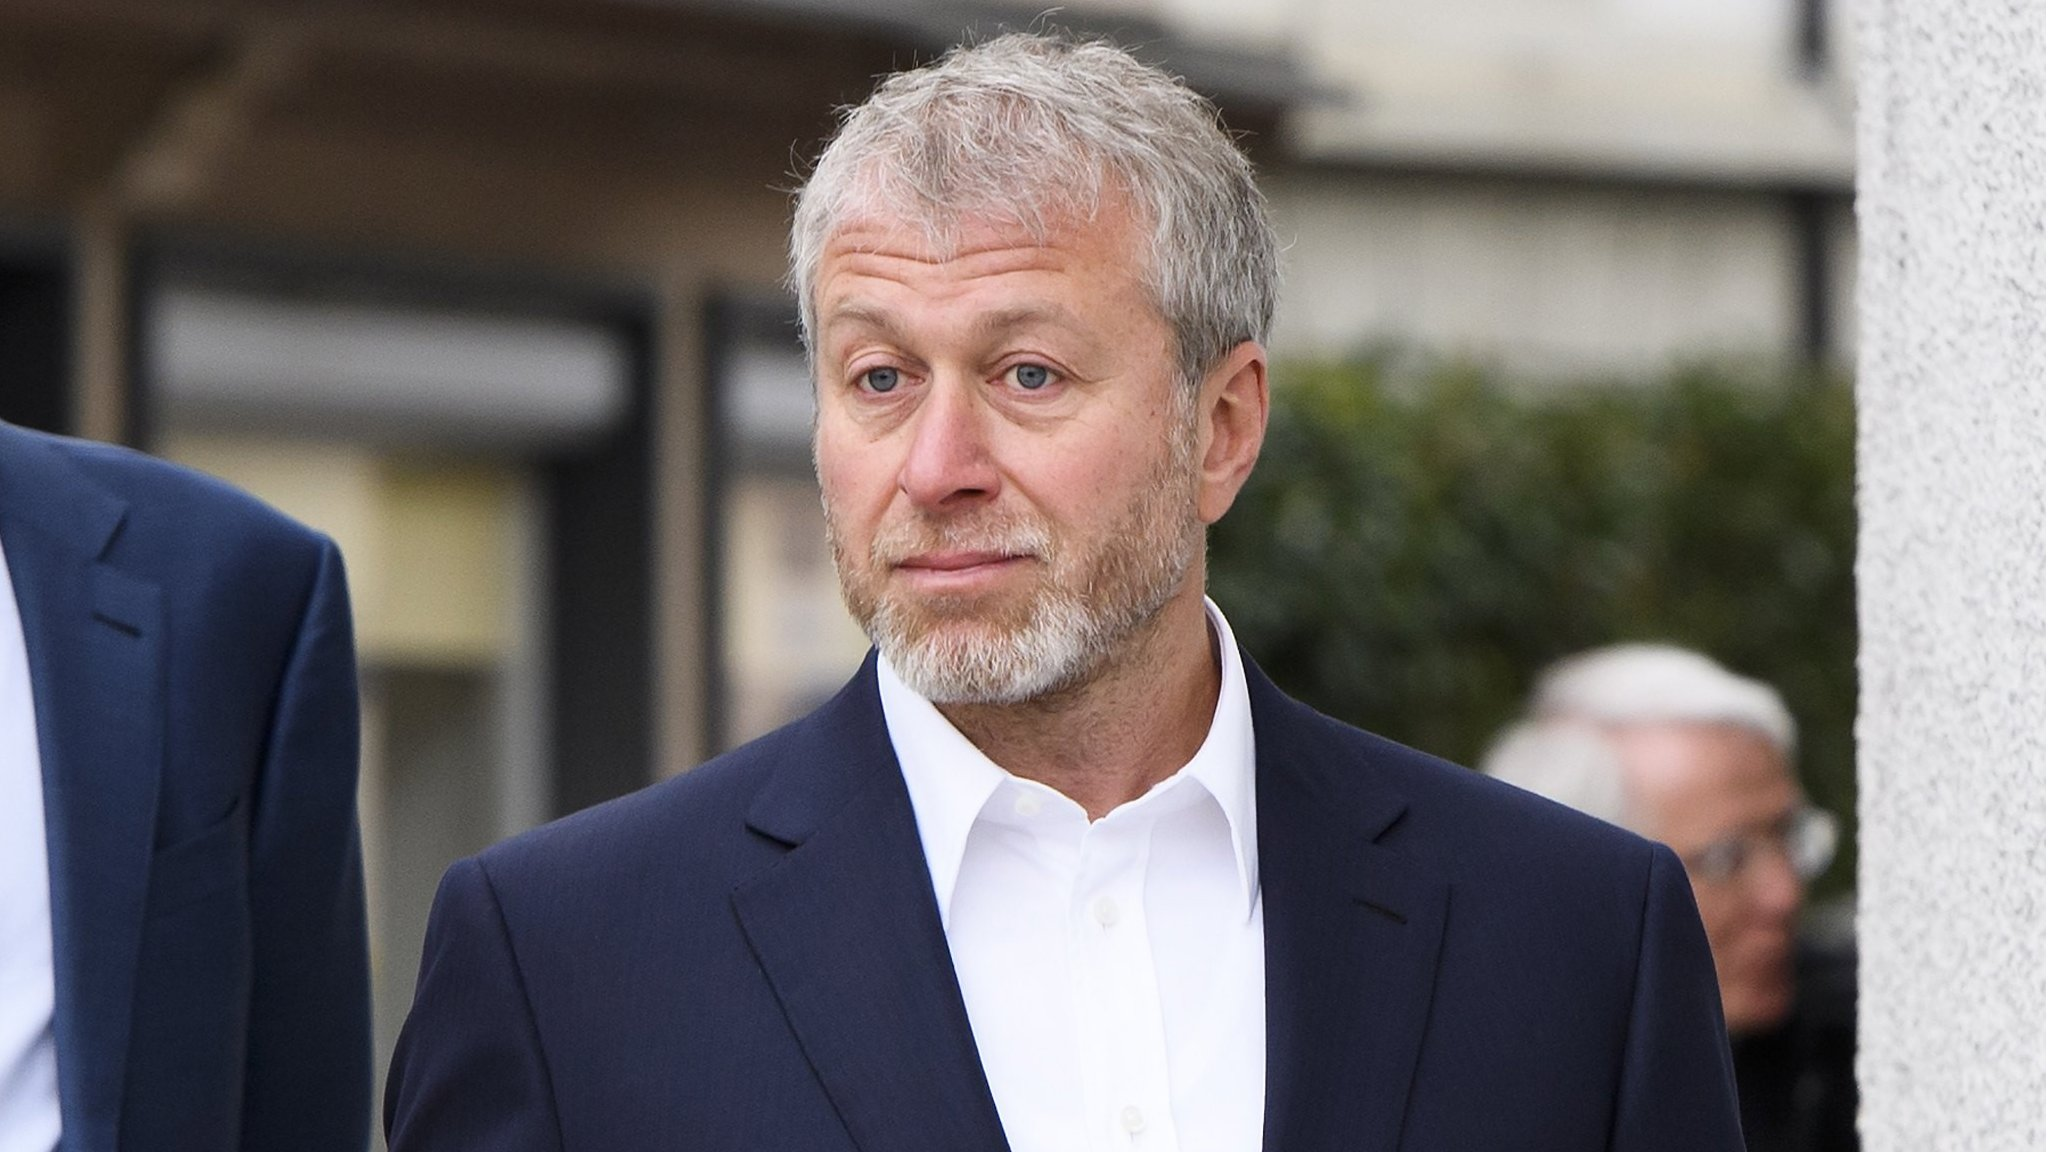 Abramovich denied Swiss residency over 'threat'